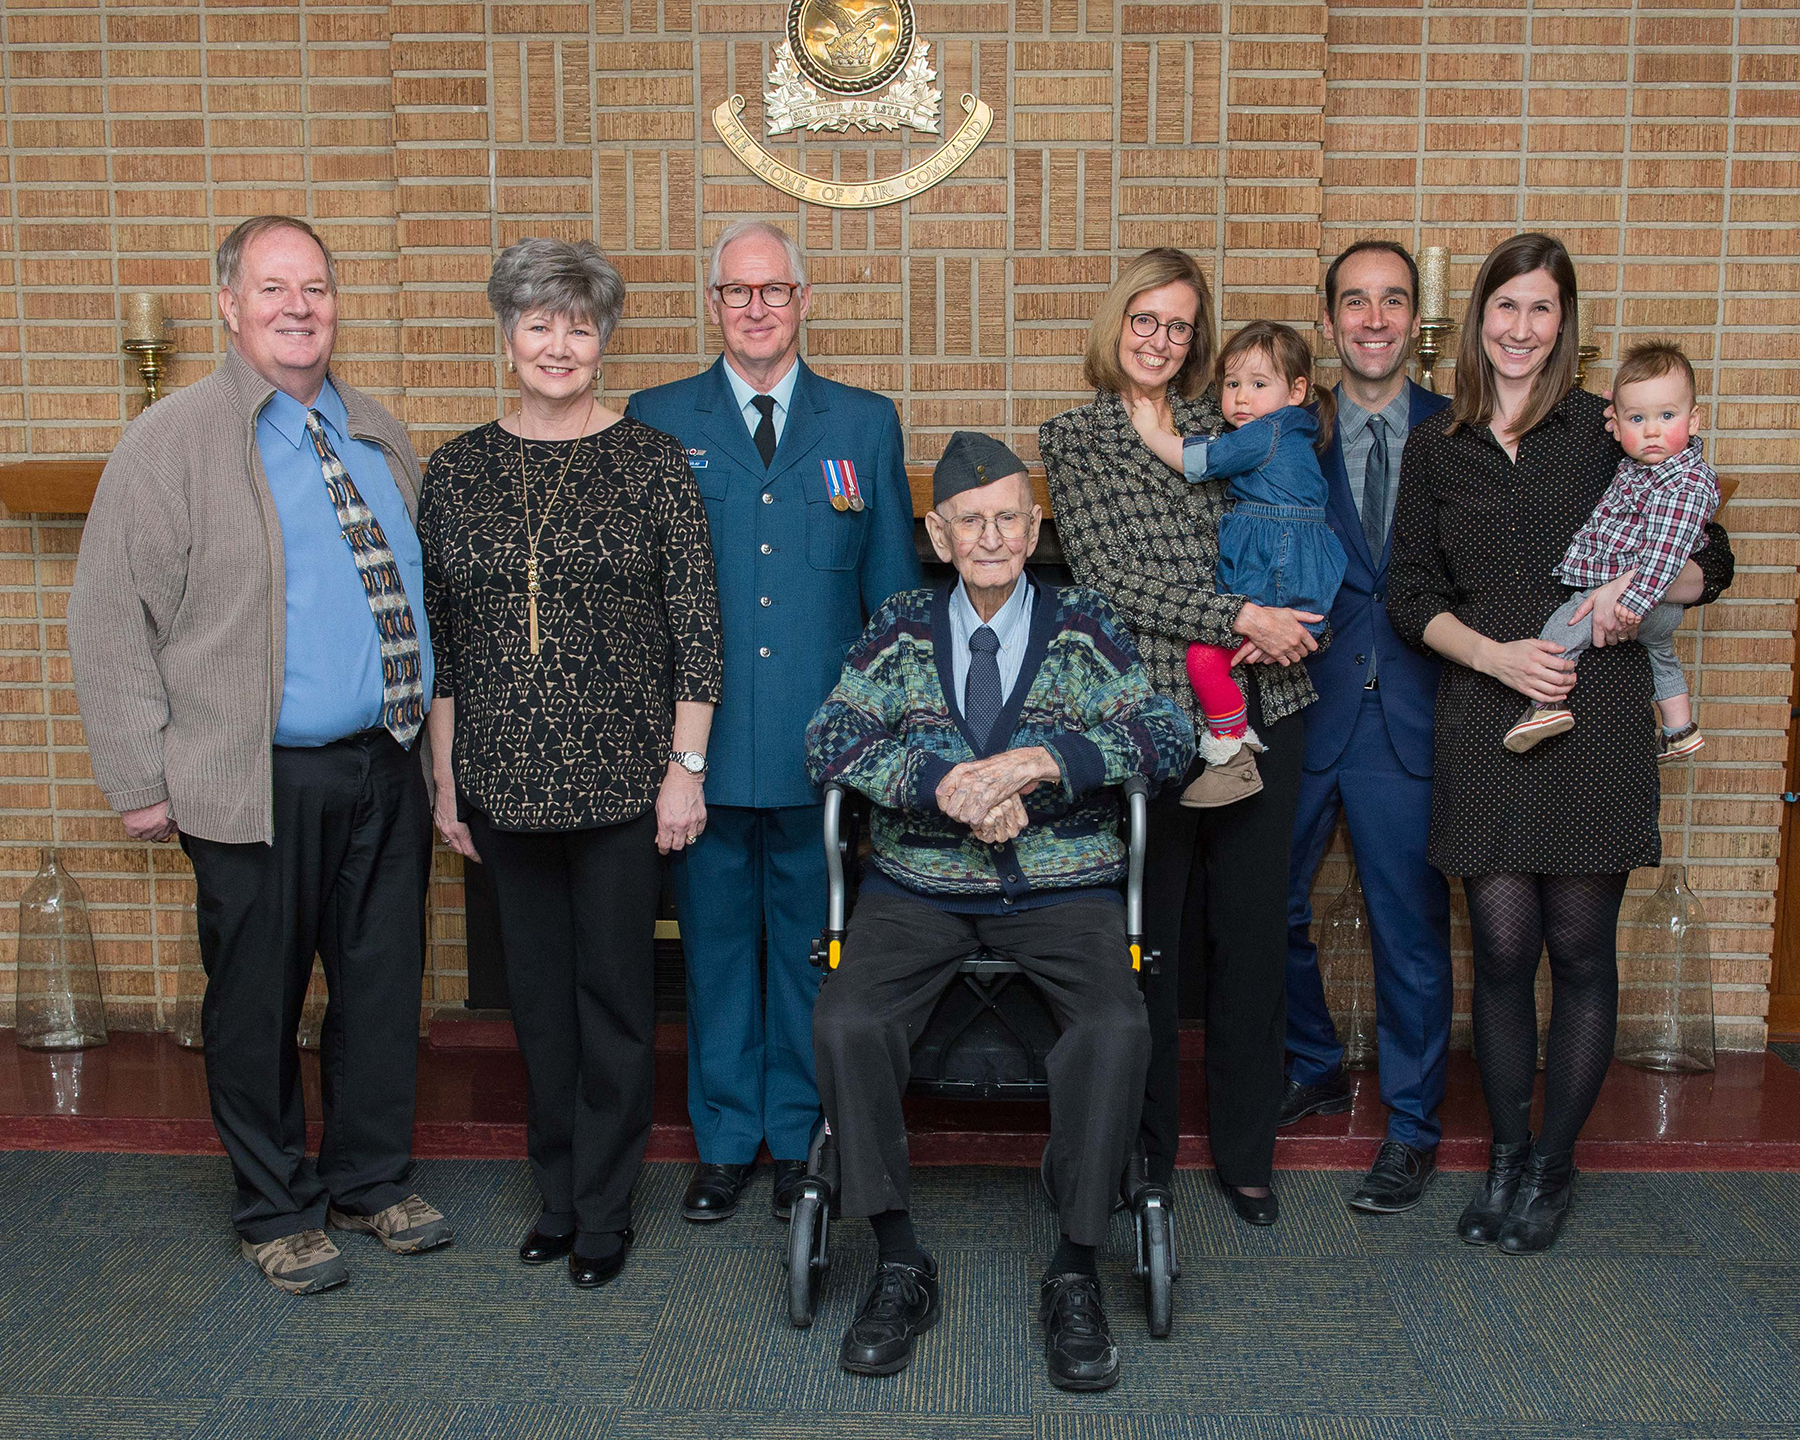 wg2018-0120-014